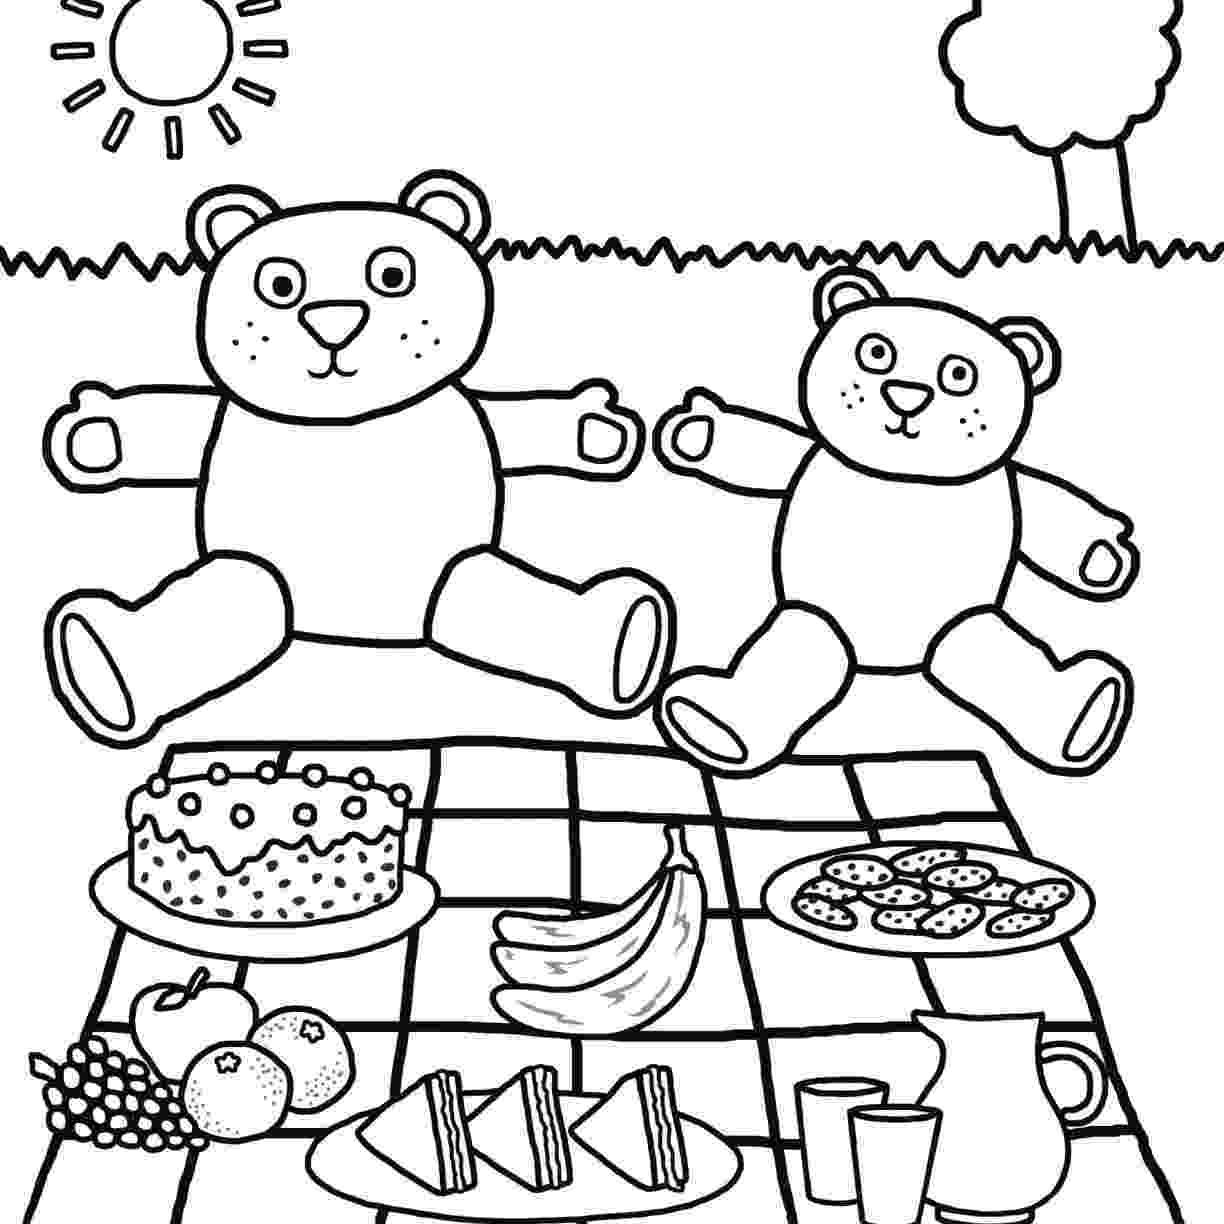 coloring pages for second graders second grade coloring pages at getcoloringscom free graders coloring second pages for